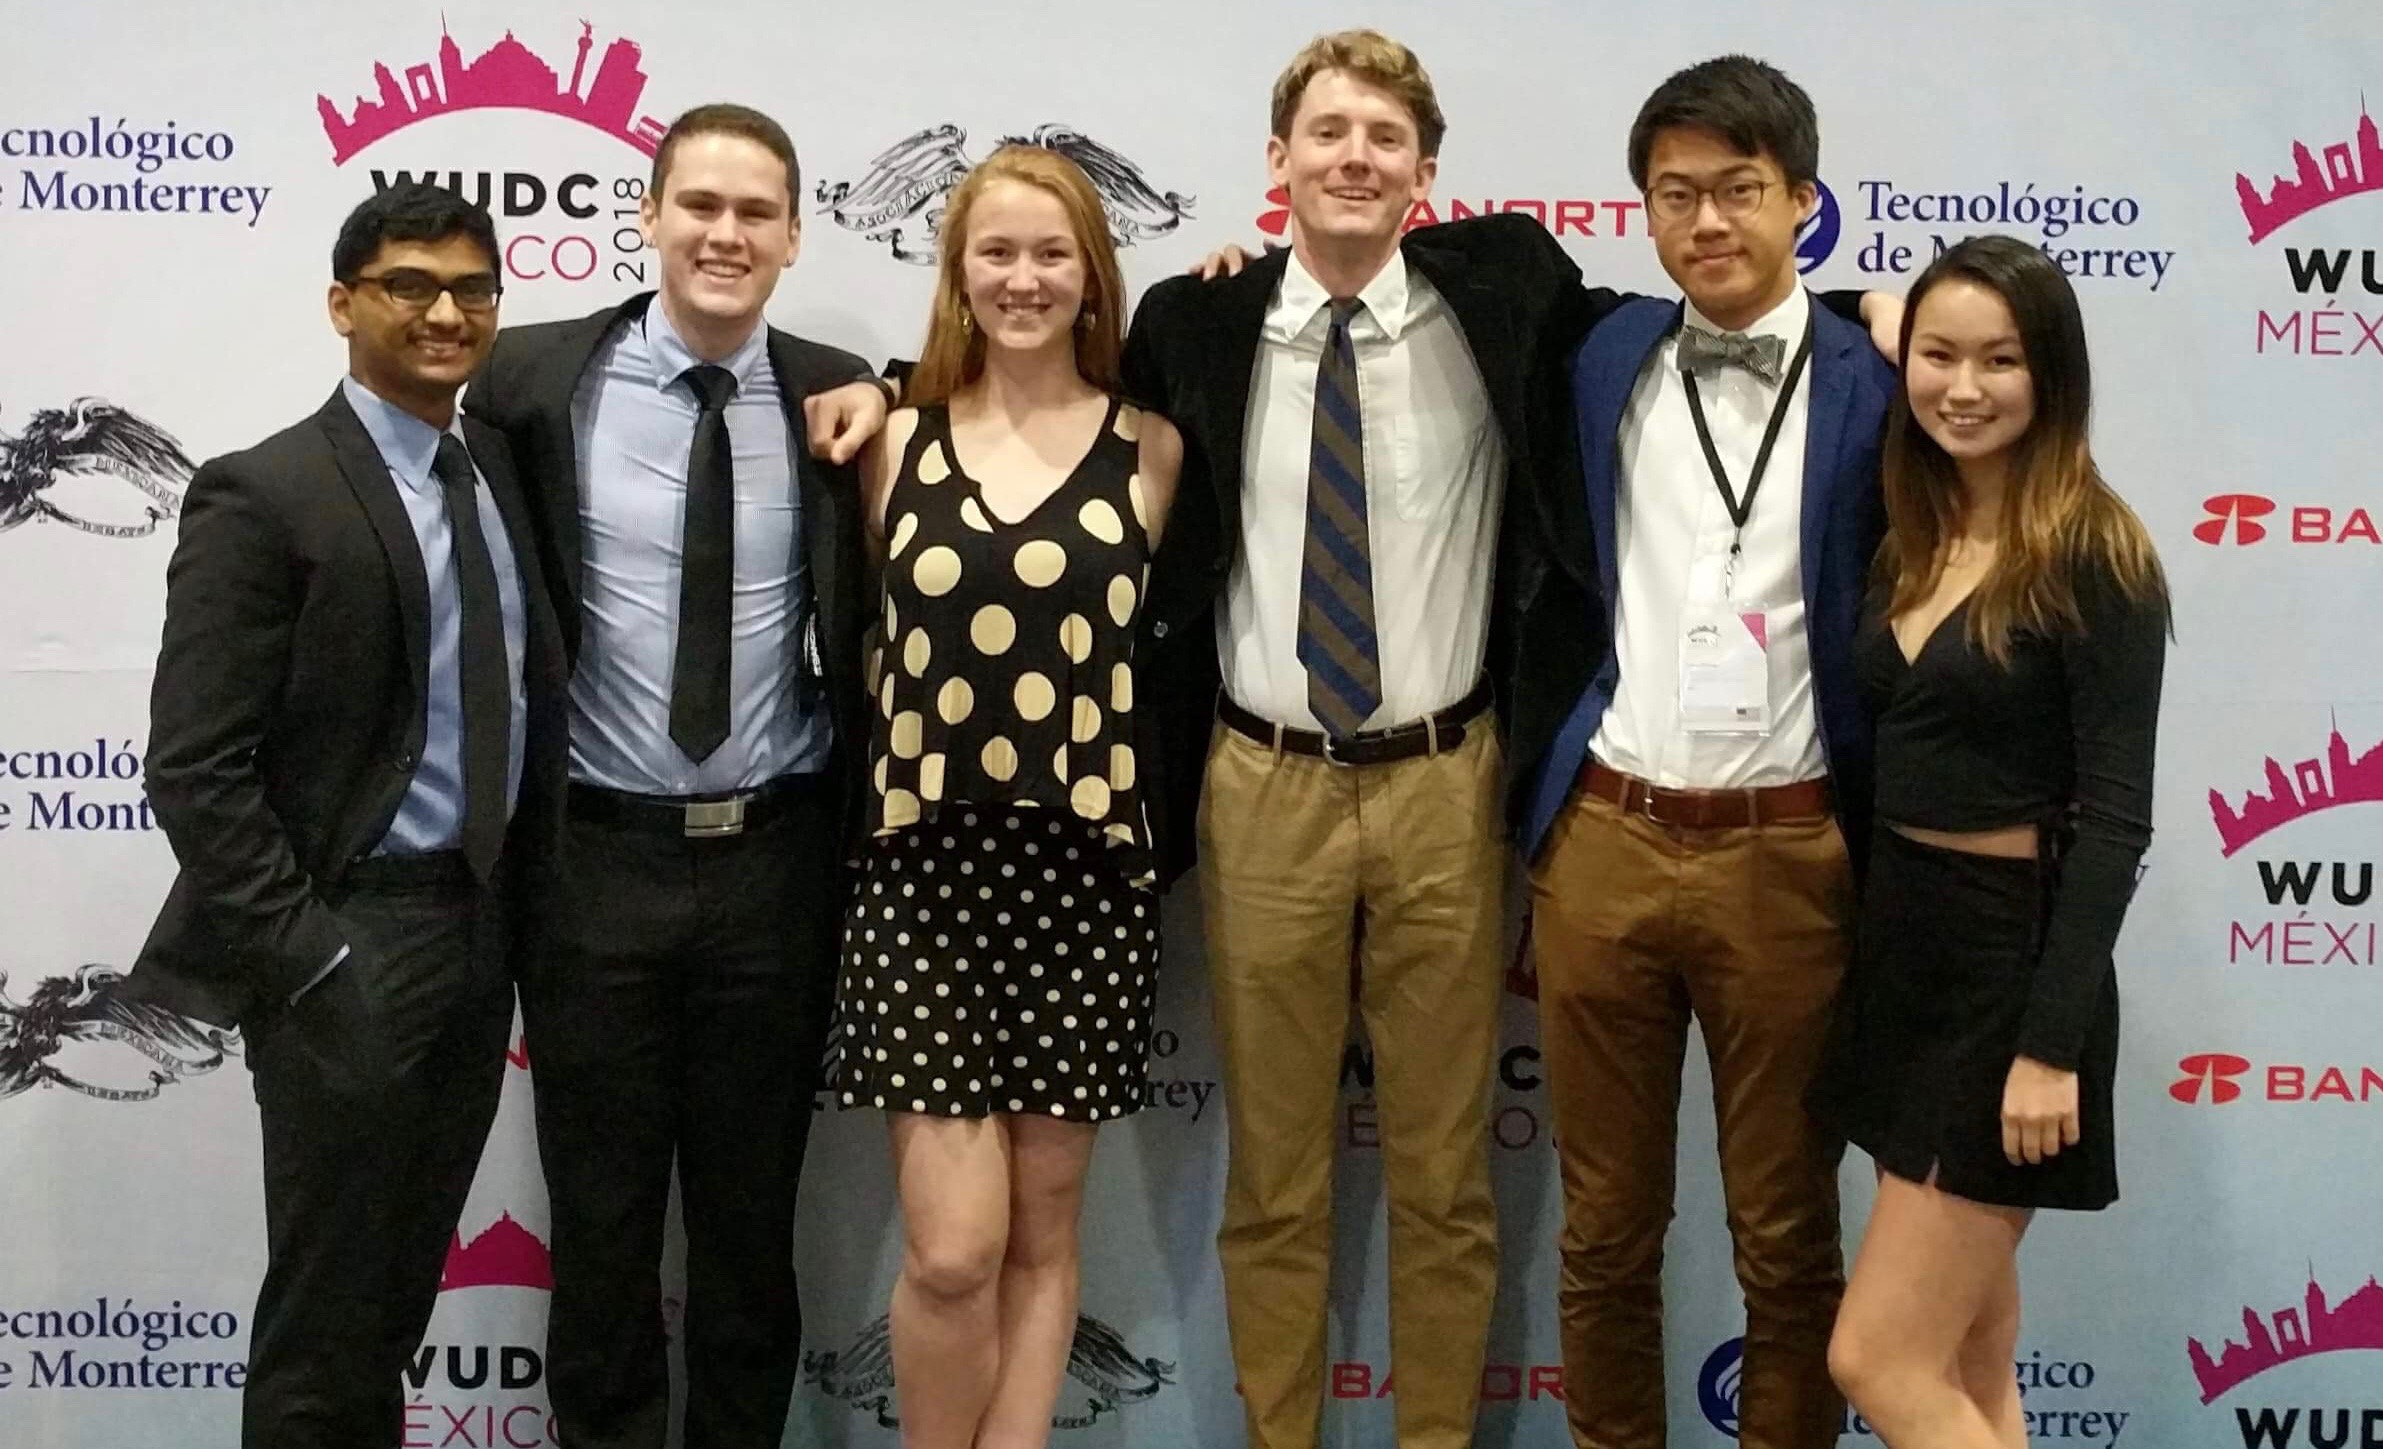 The Berkeley contingent at the 2018 World Universities Debating Championship in Mexico